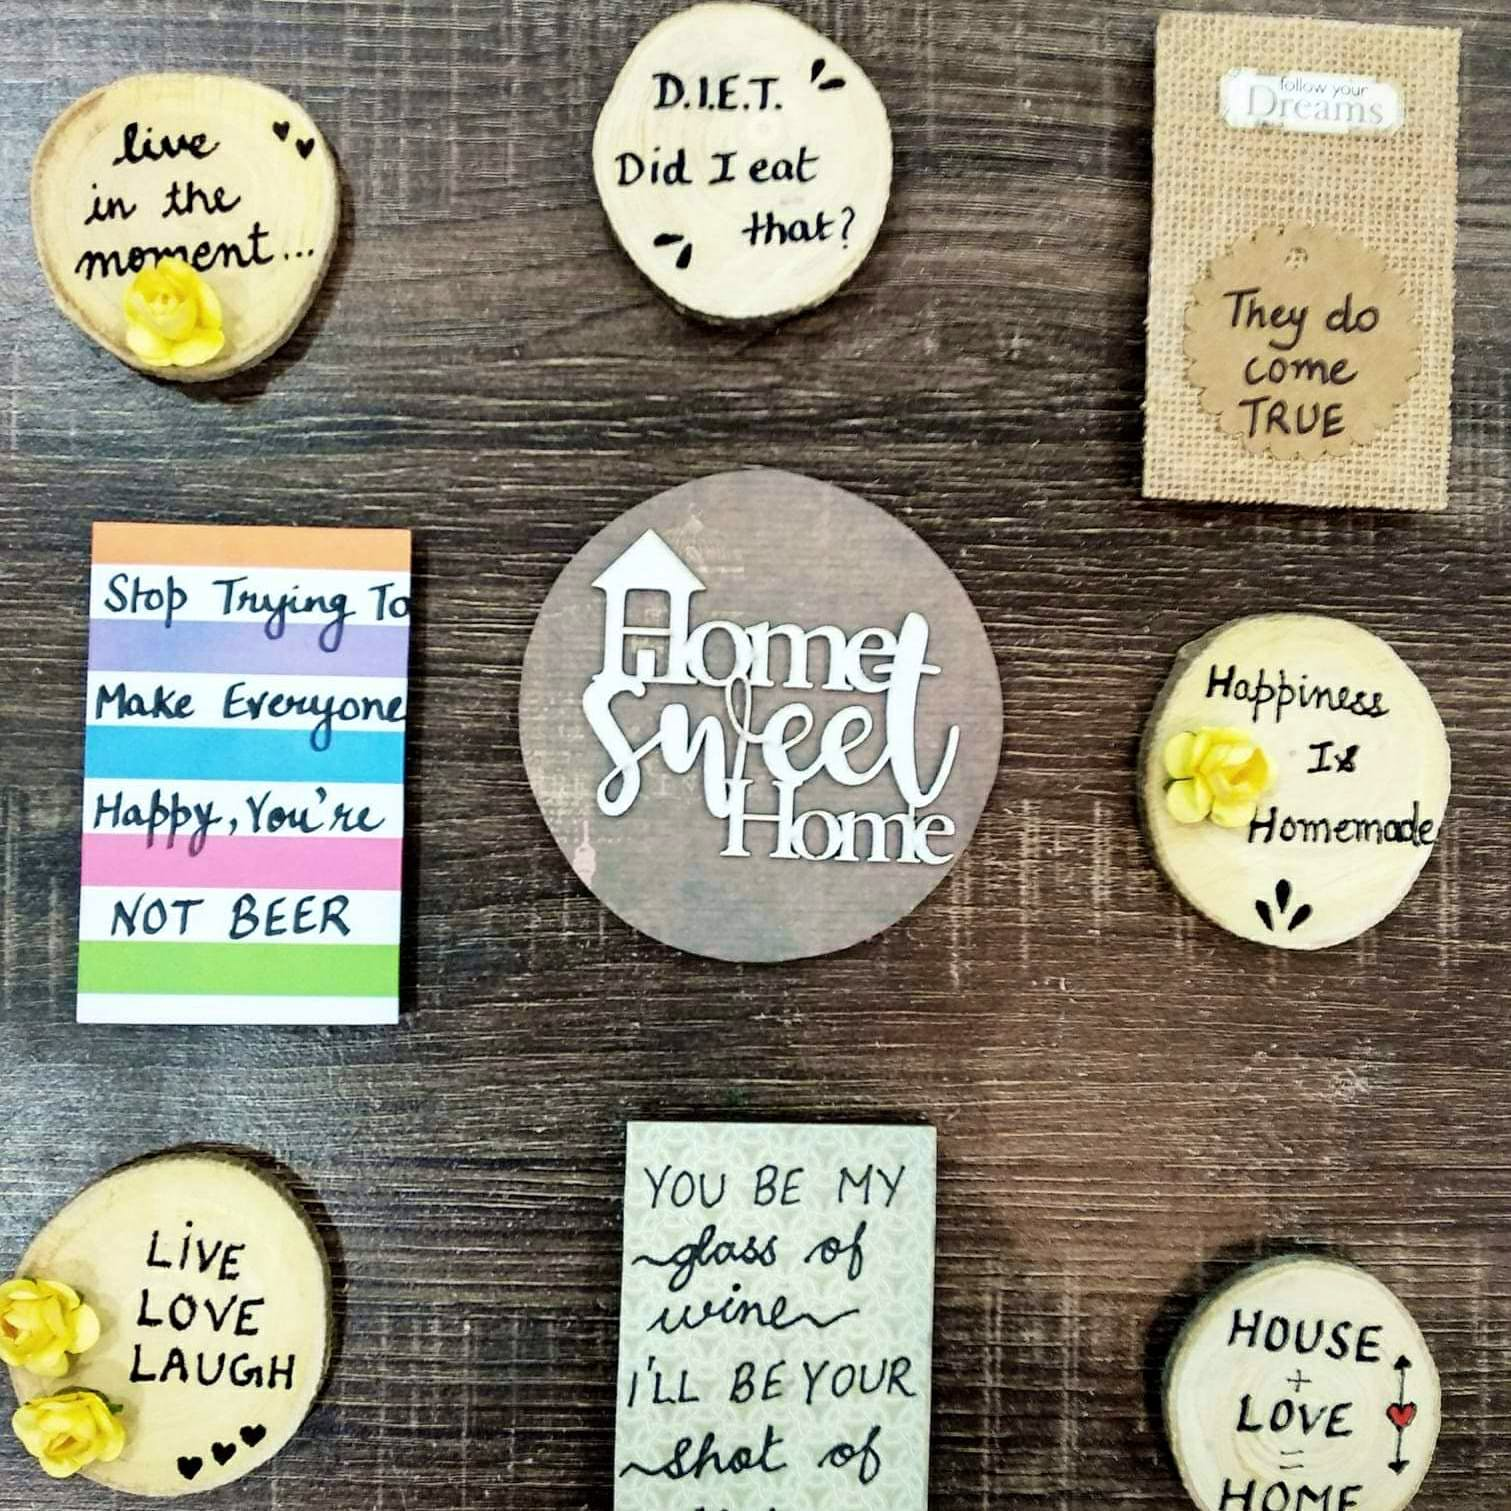 Text,Font,Material property,Label,Circle,Wood,Post-it note,Metal